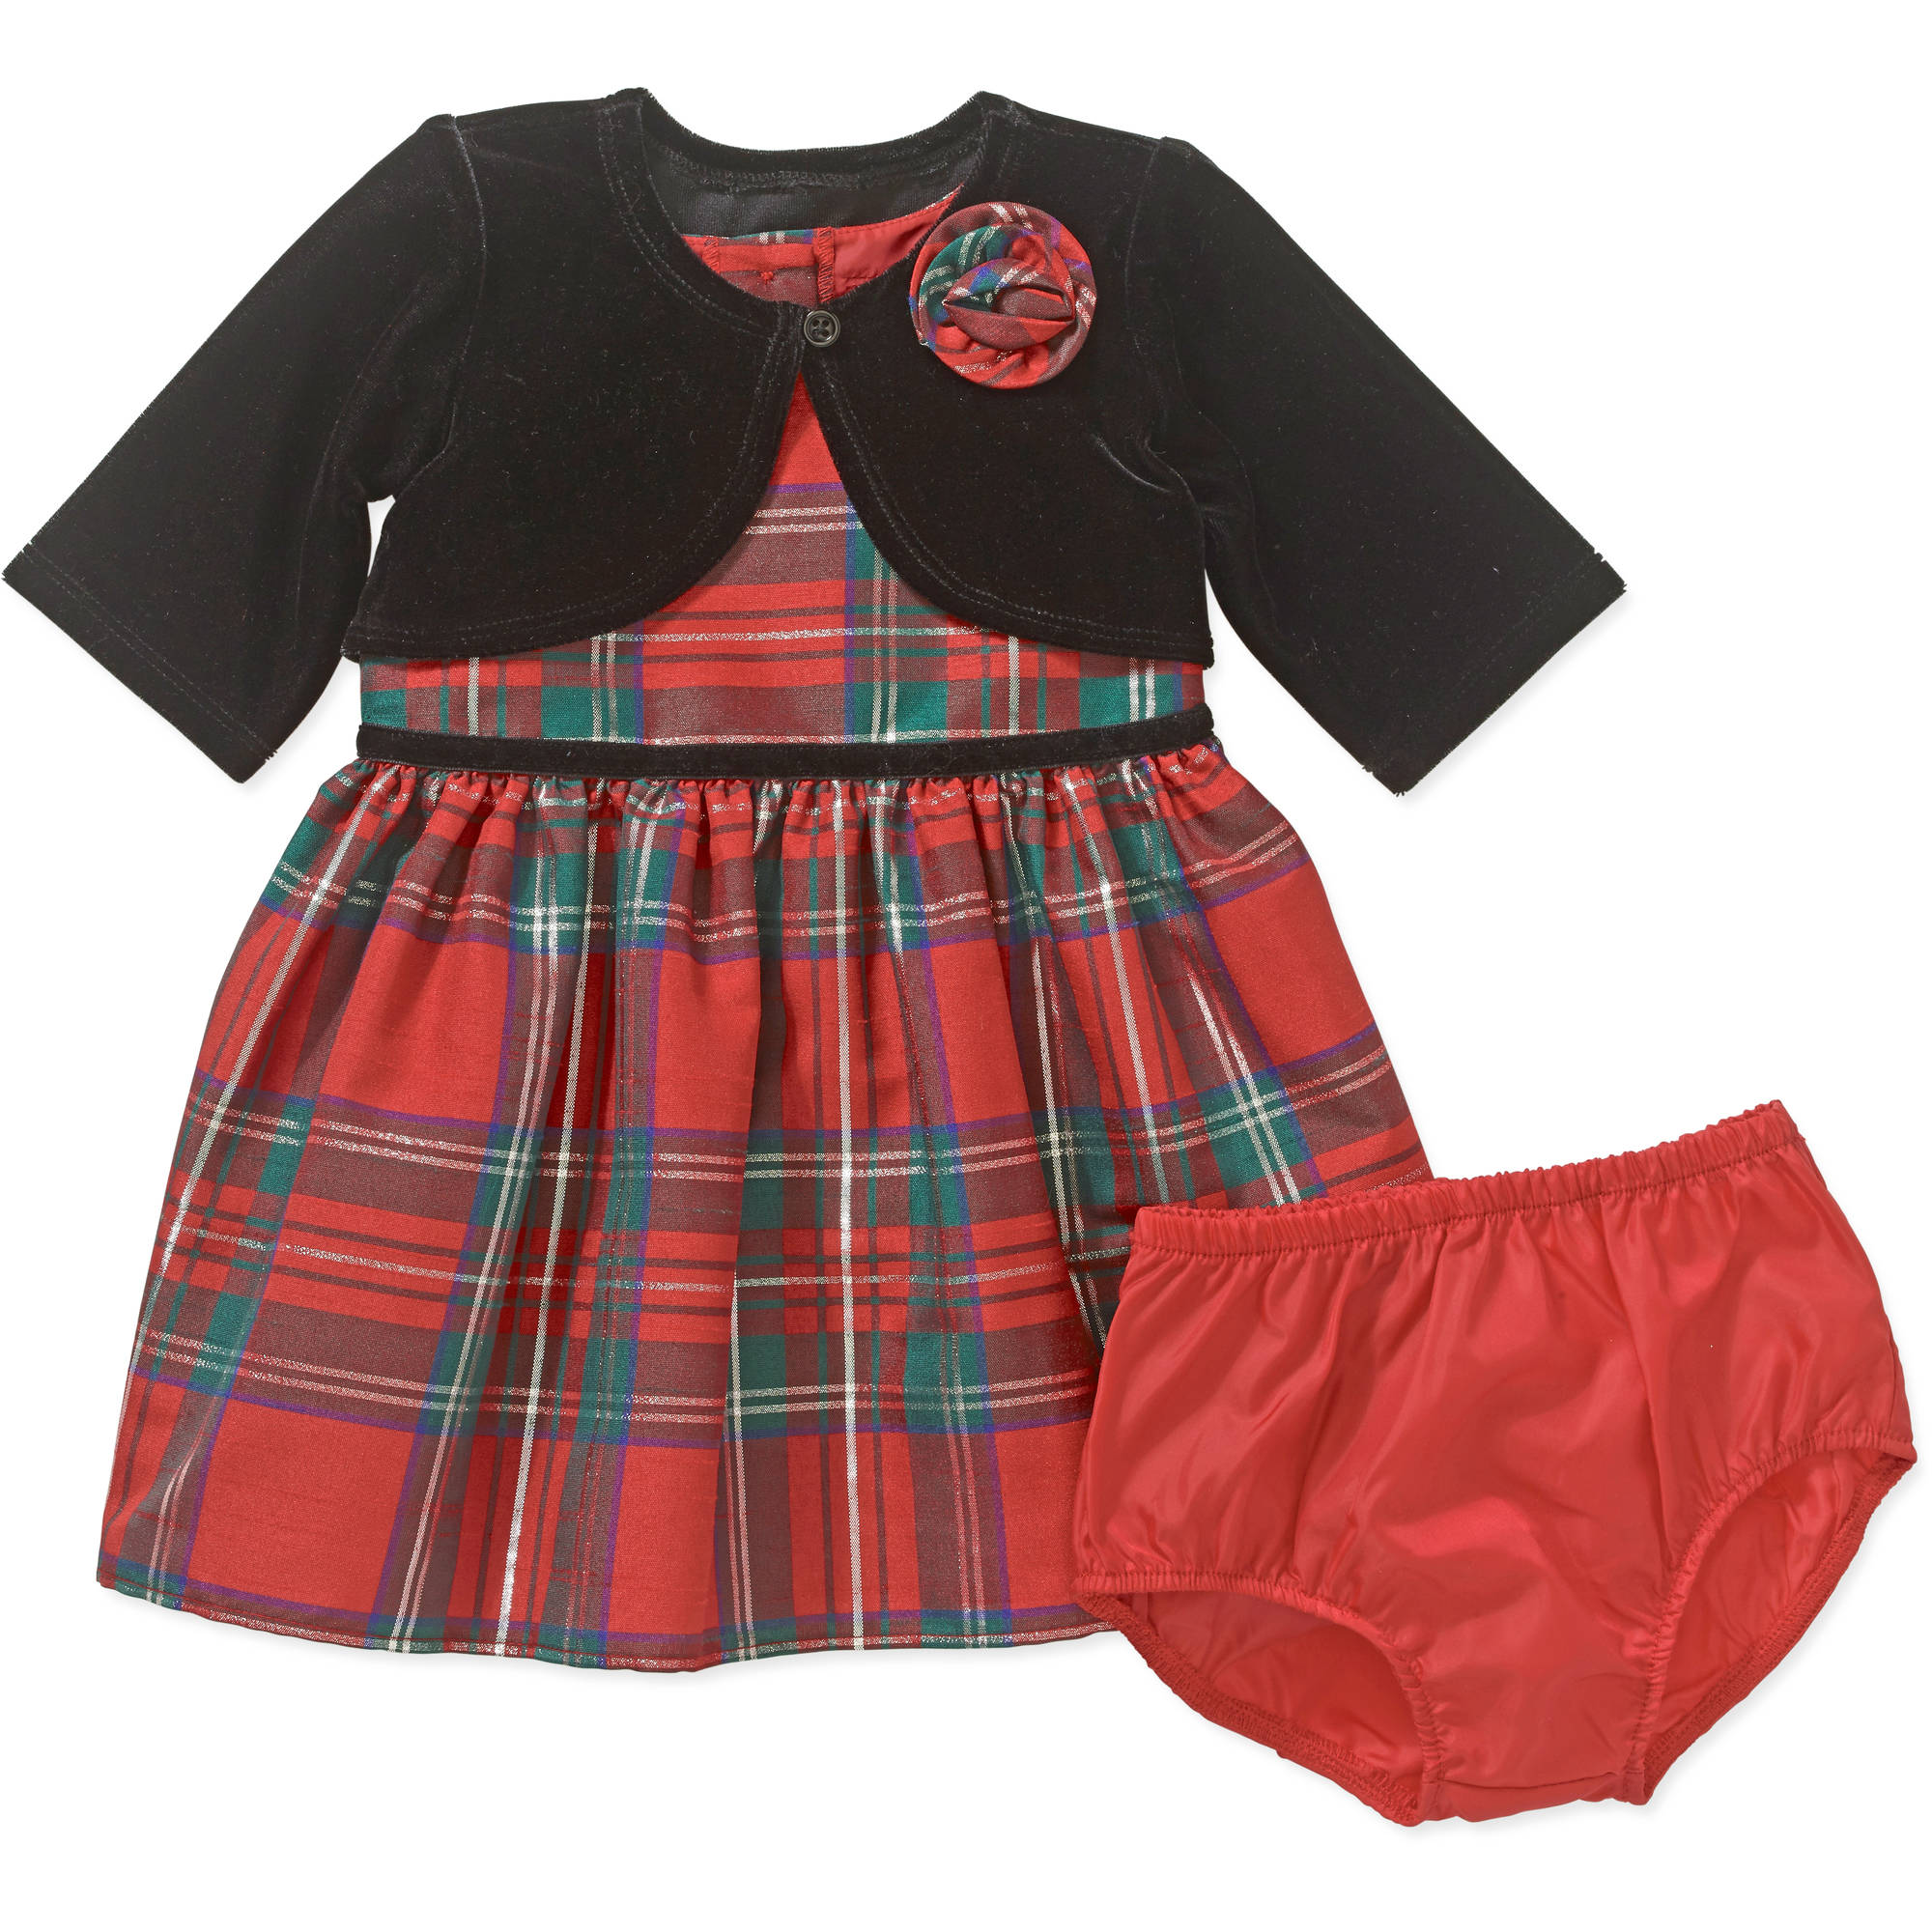 George Newborn Baby Girls' Plaid Holiday or Special Occasion Dress with Velvet Jacket Set